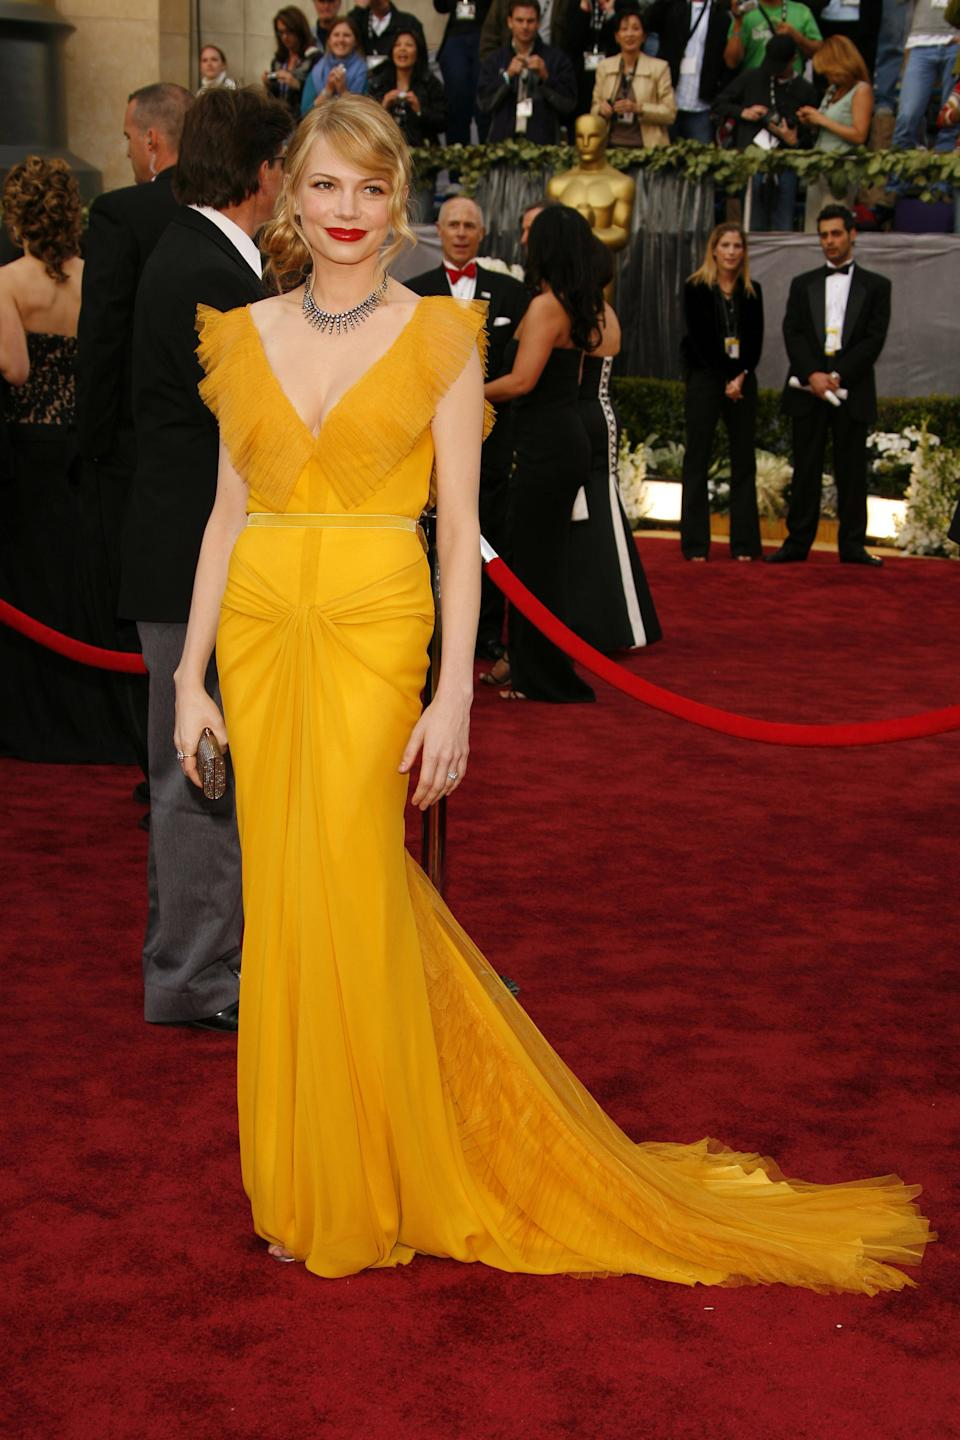 "<p>It's rare that stars opt for a bold colour like yellow for the Oscar red carpet, but Williams expertly pulled off this rich marigold shade to celebrate her Best Supporting Actress nomination for ""Brokeback Mountain.""</p>"